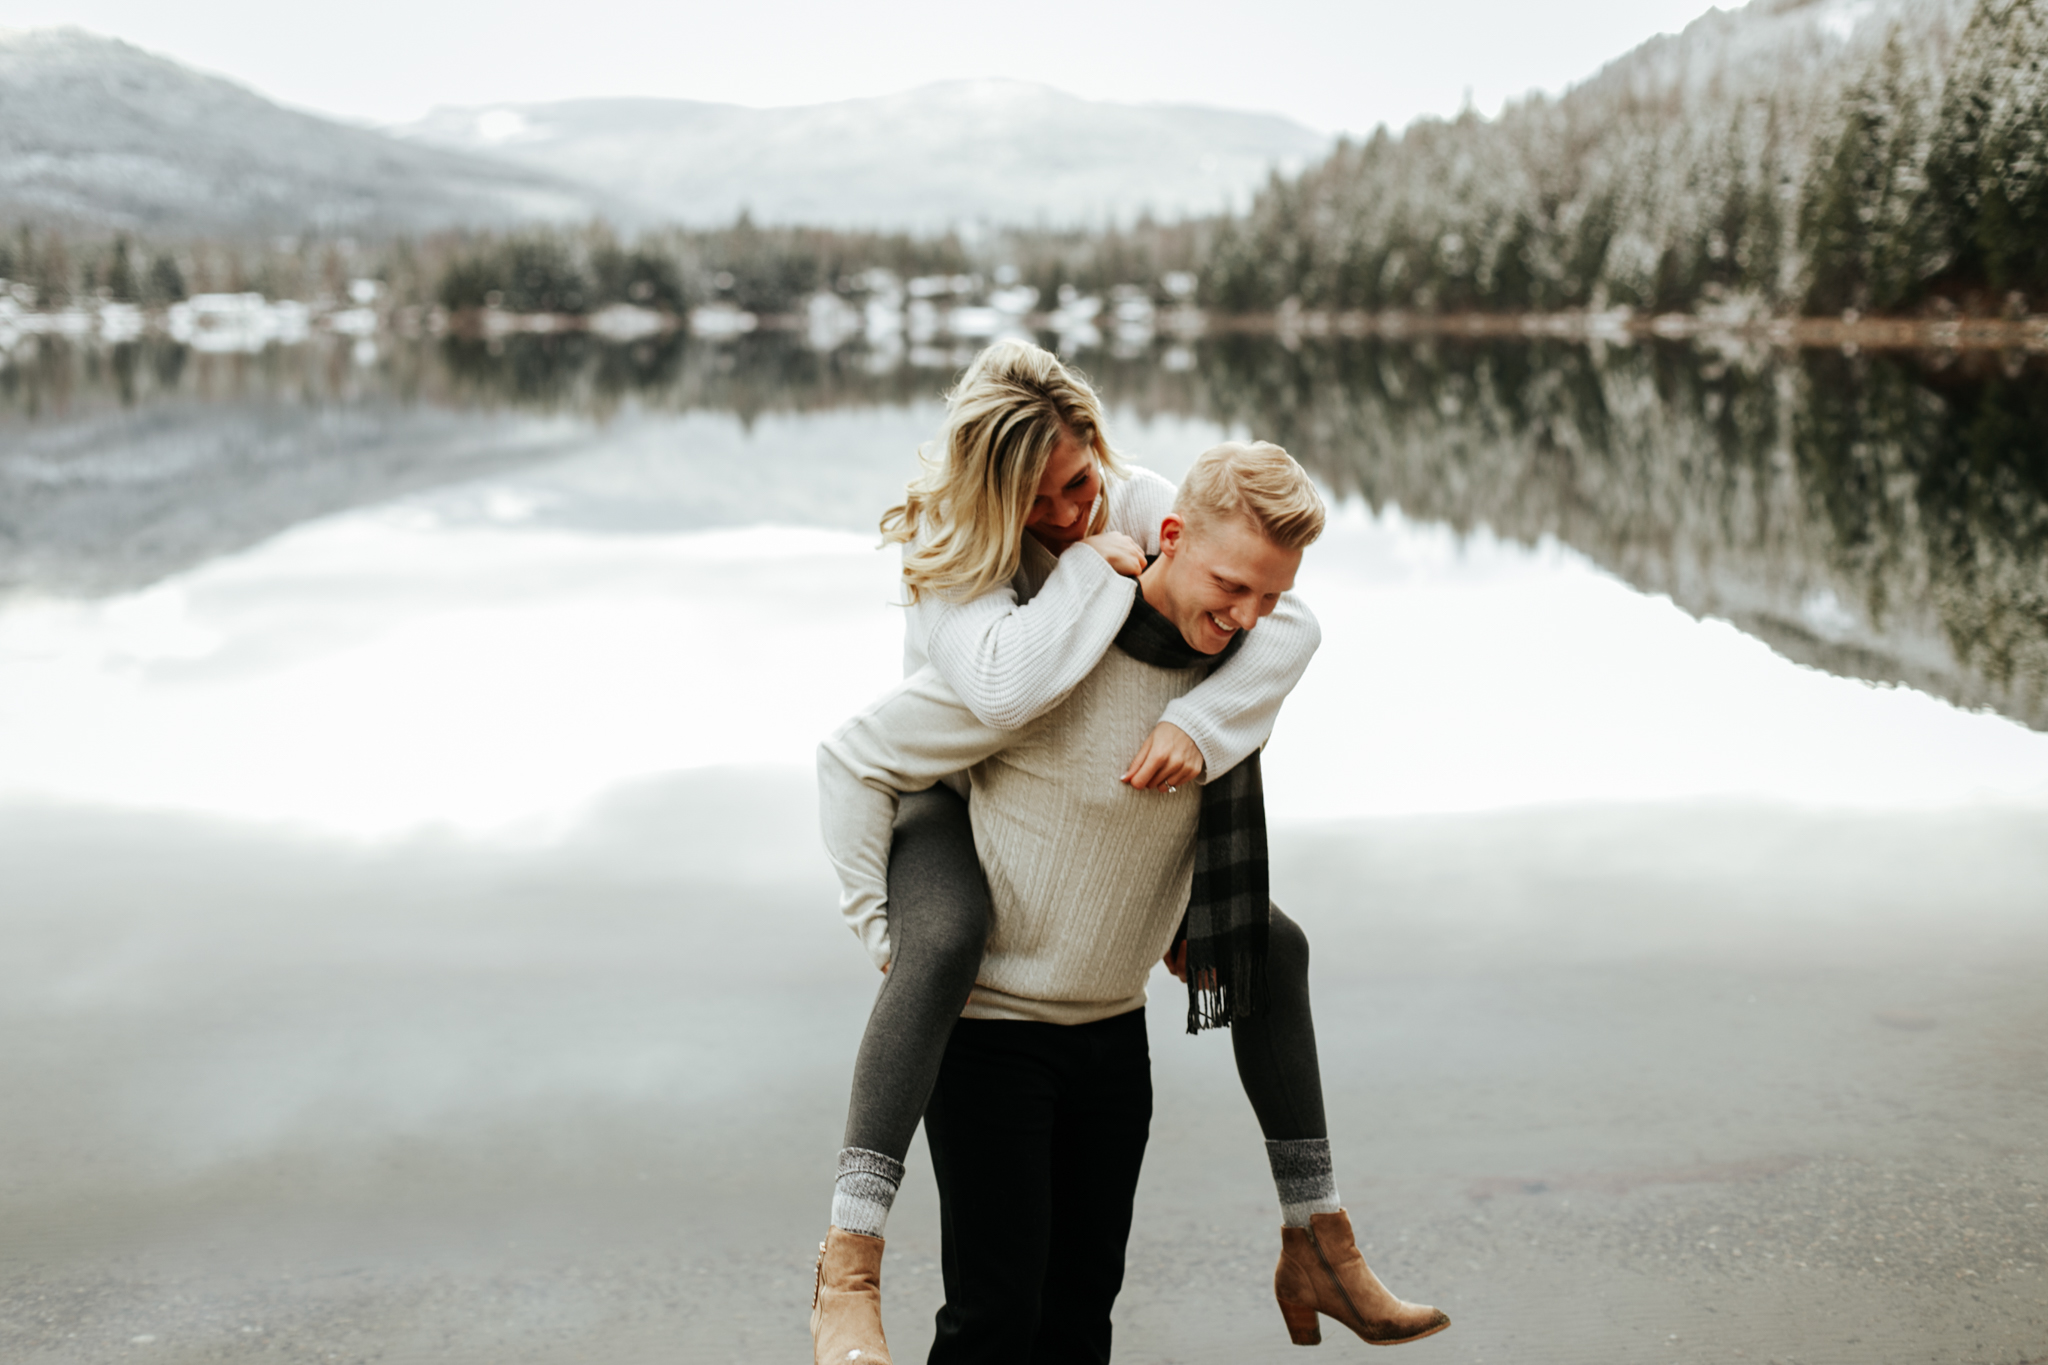 love-and-be-loved-photography-mountain-engagement-ashlyn-rob-perfect-fit-4-u-photo-image-picture-18.jpg